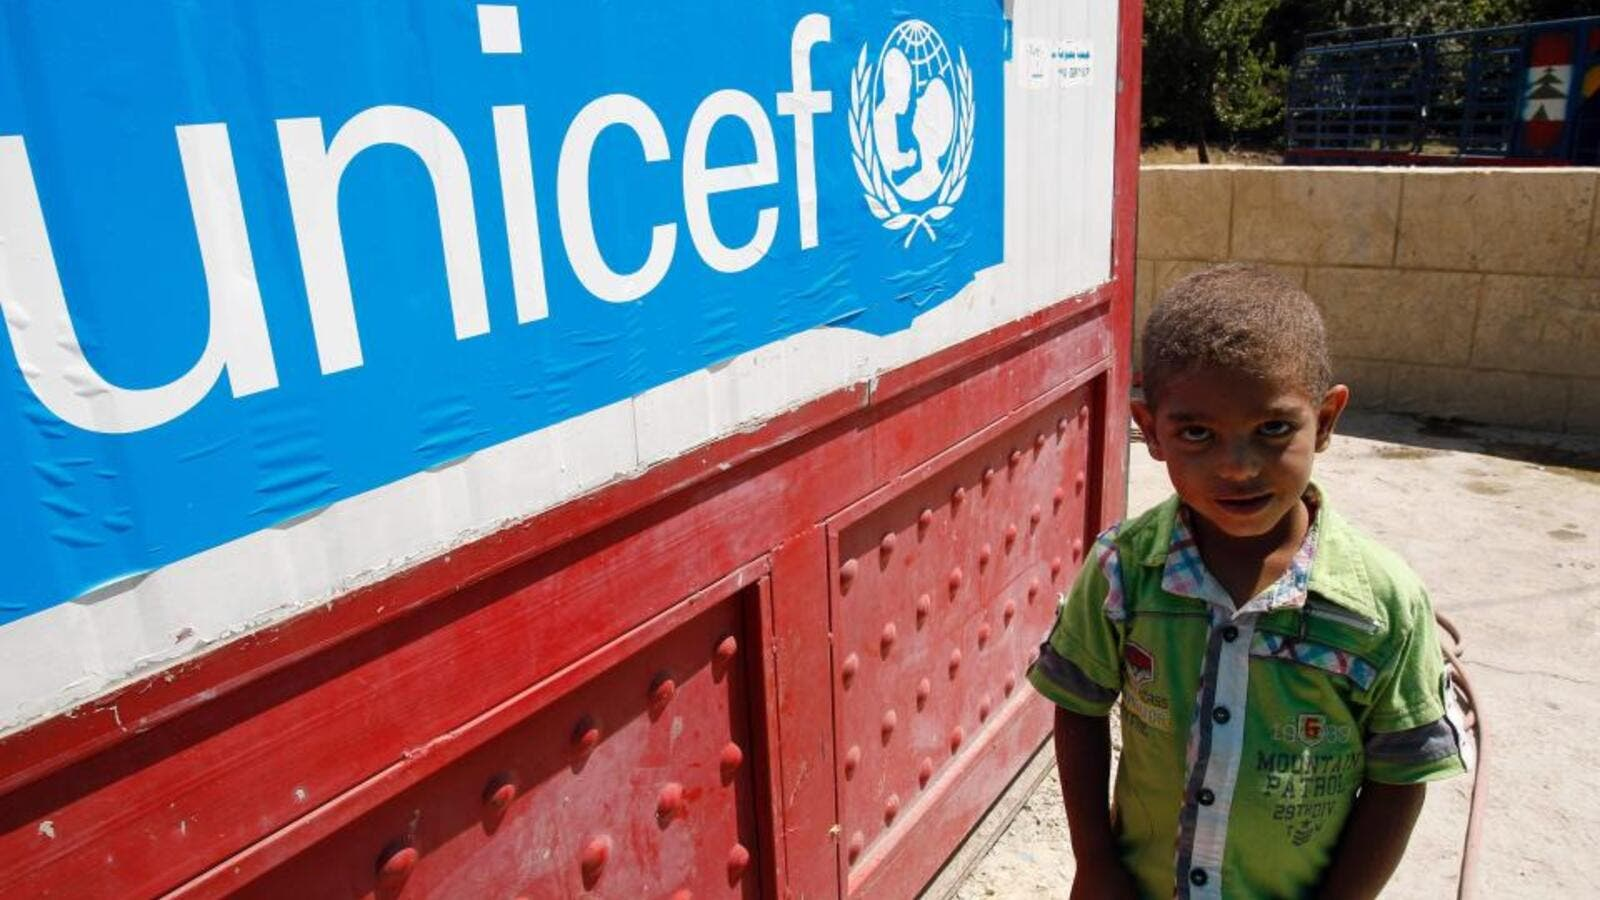 The UN children's agency Unicef comes to the aid of children caught up in crises worldwide (AFP/File Photo)